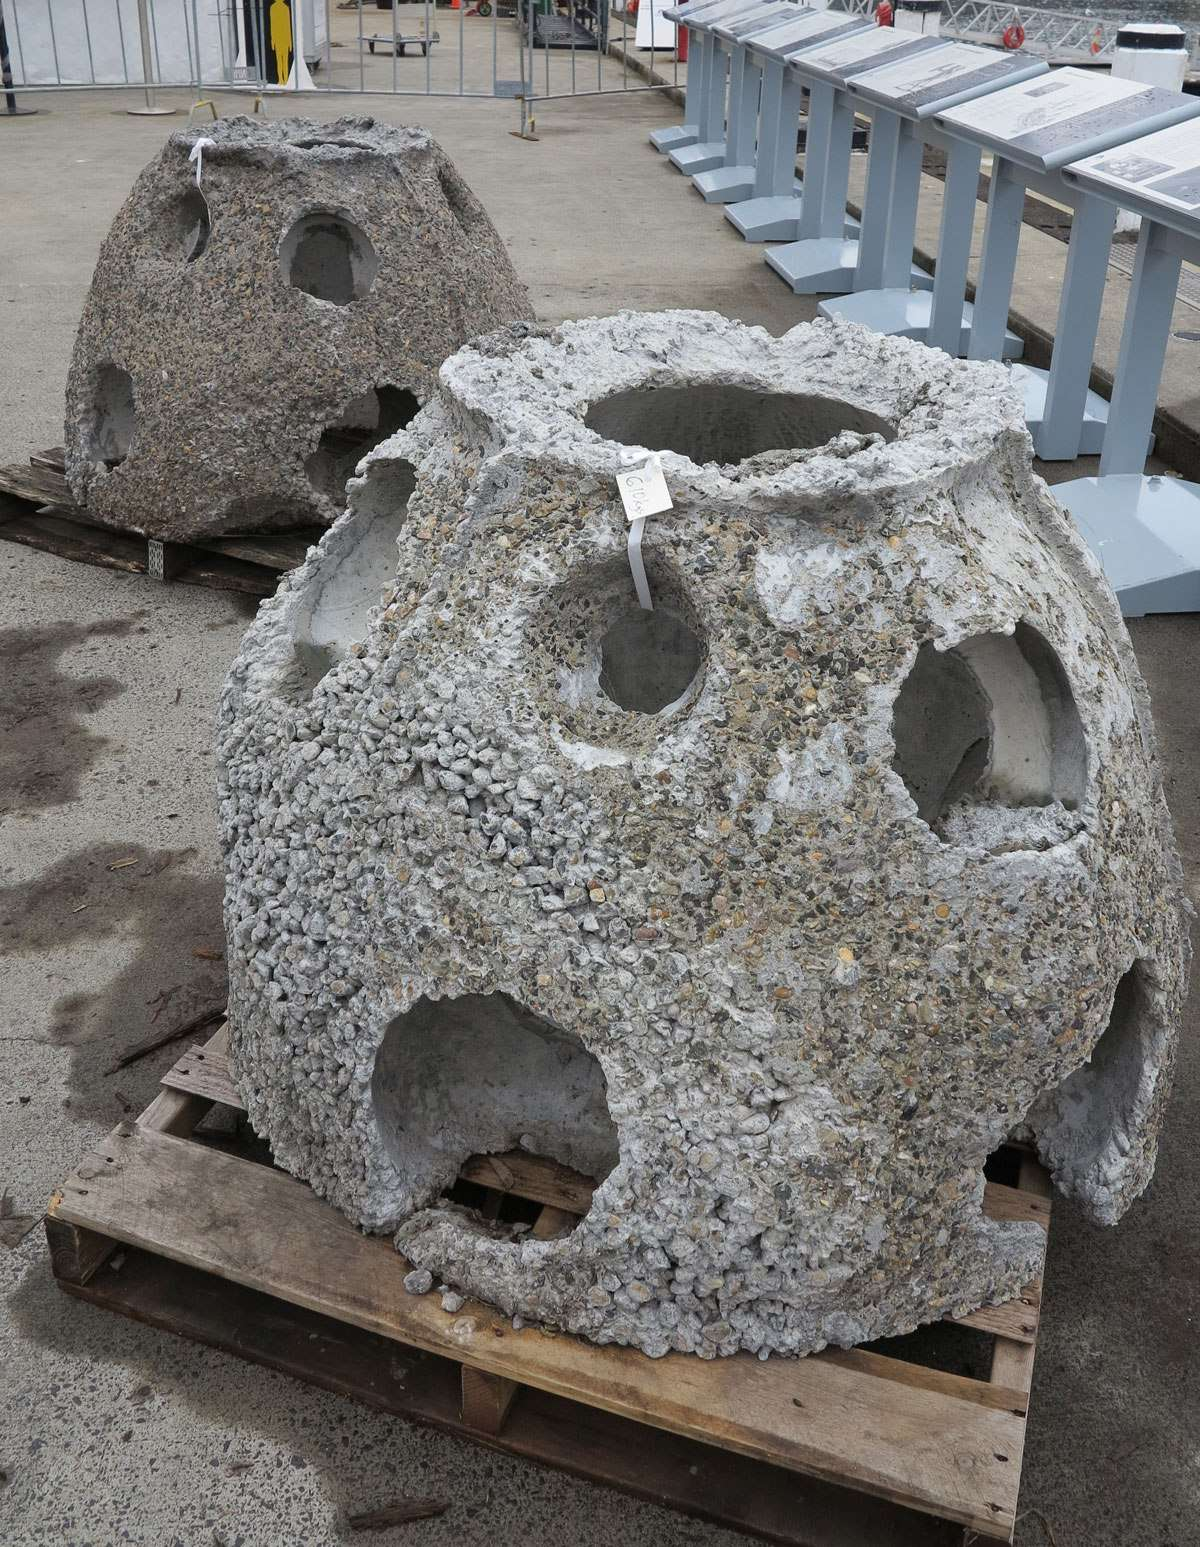 Two Reef Balls waiting for installation at the Australian National Maritime Museum